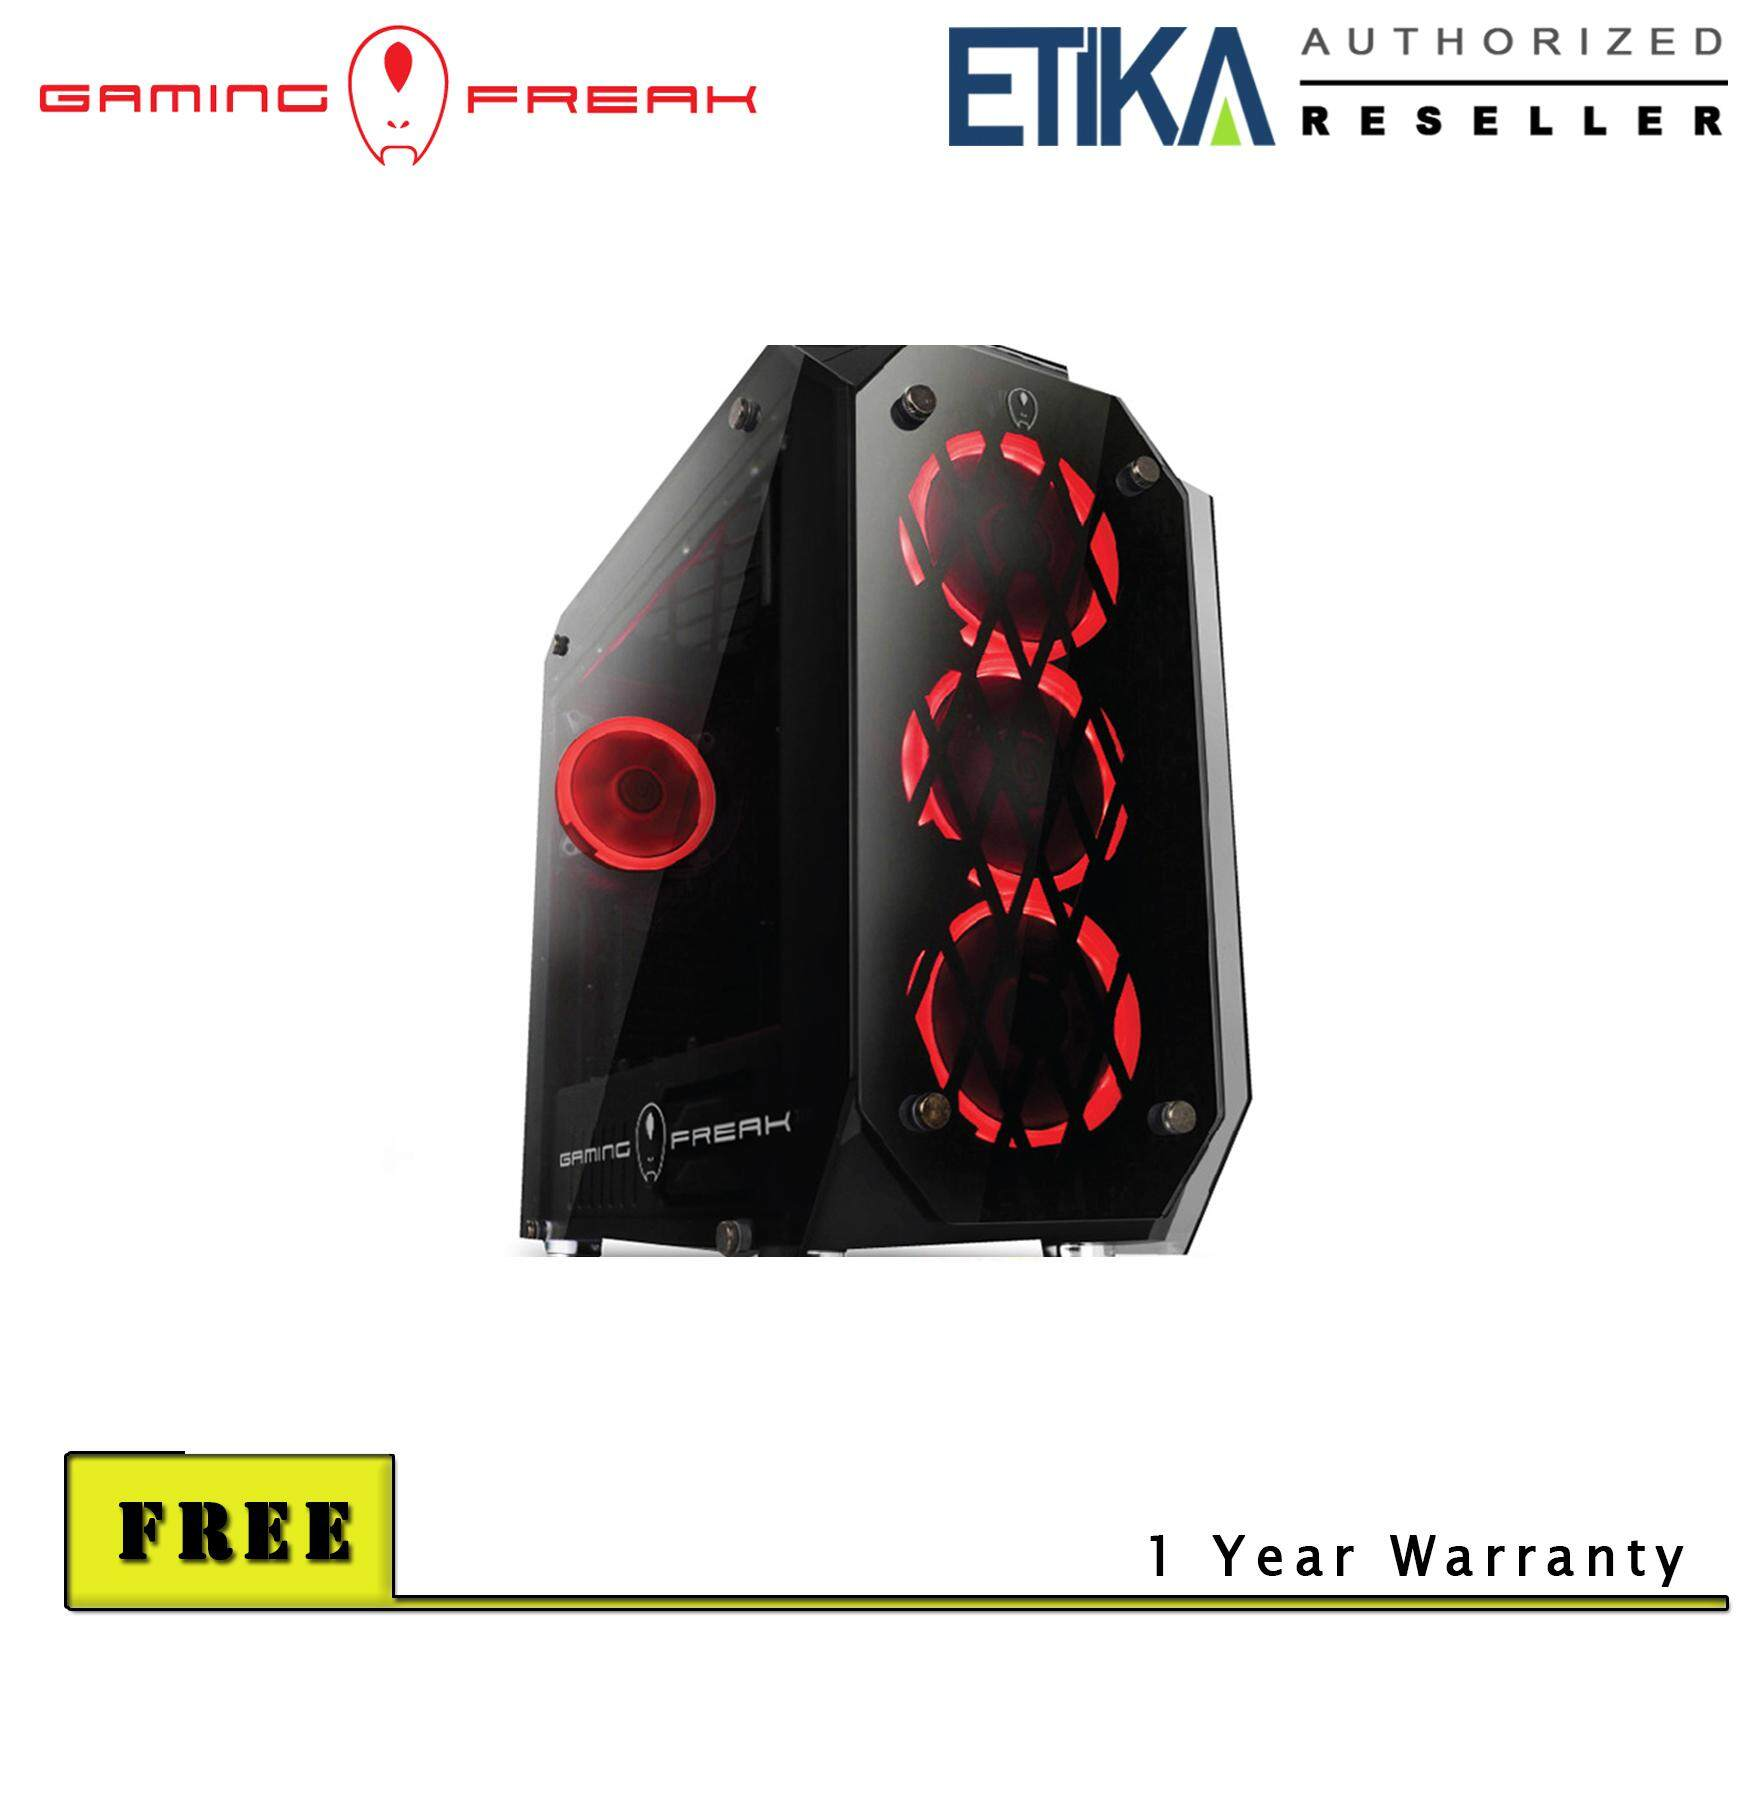 Gaming Freak EOS M800G Tempered Glass Chassis (GFG-M800G) Malaysia